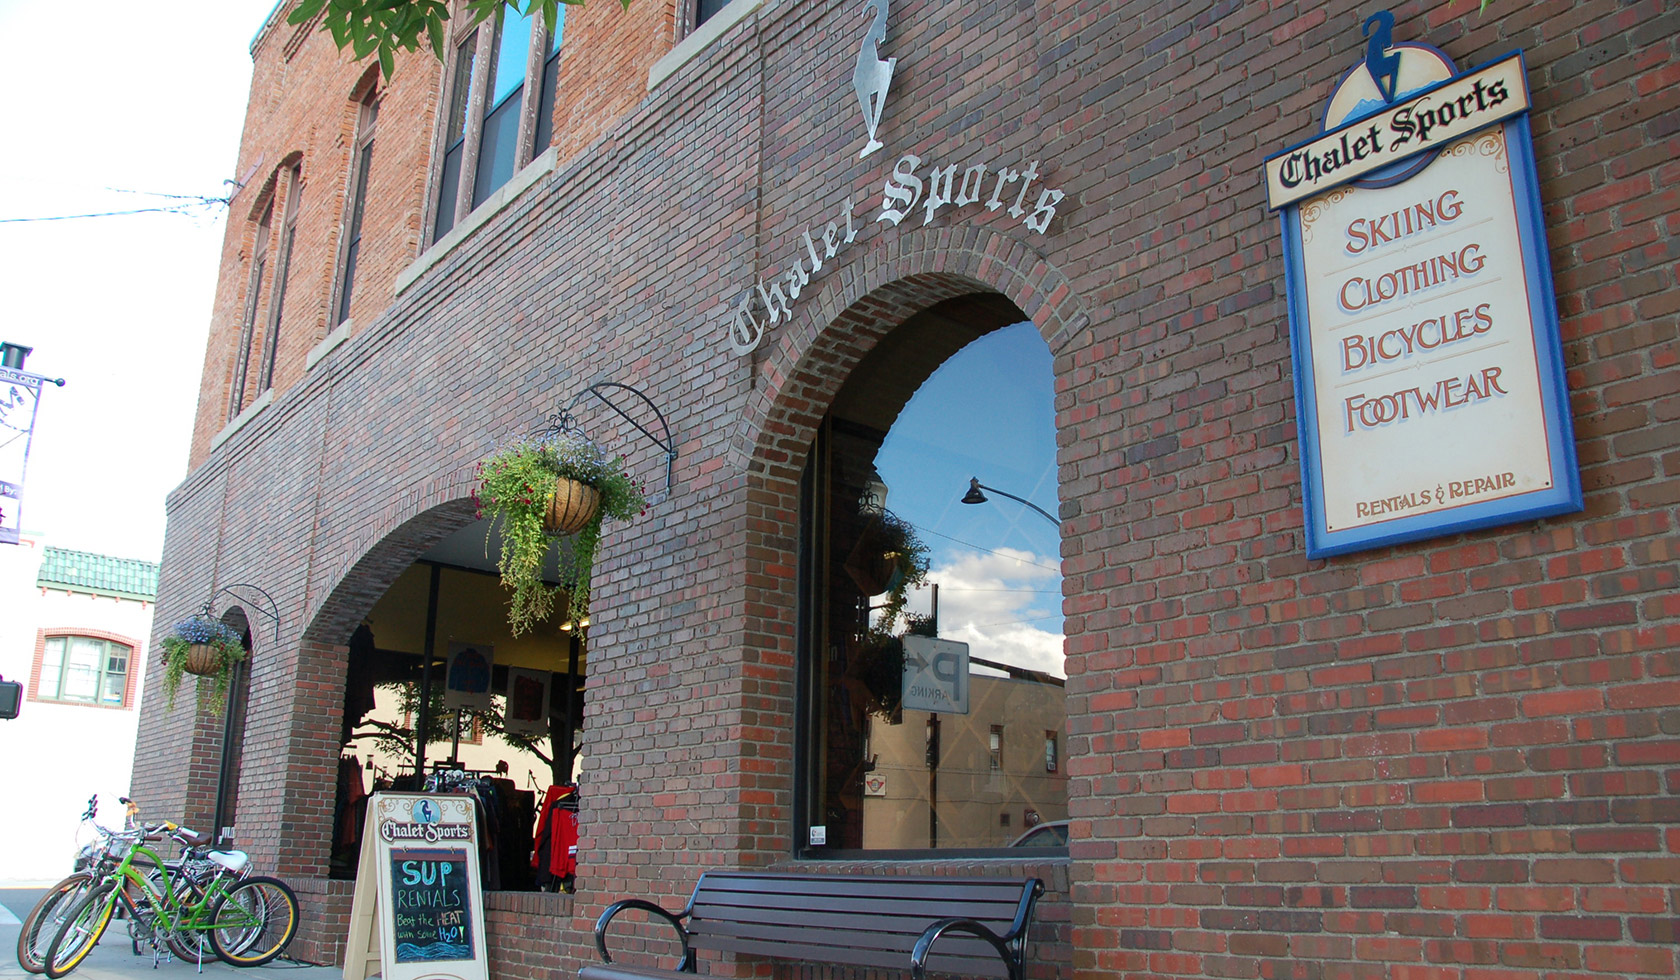 Chalet Sports Local Ski Shop in Downtown Bozeman